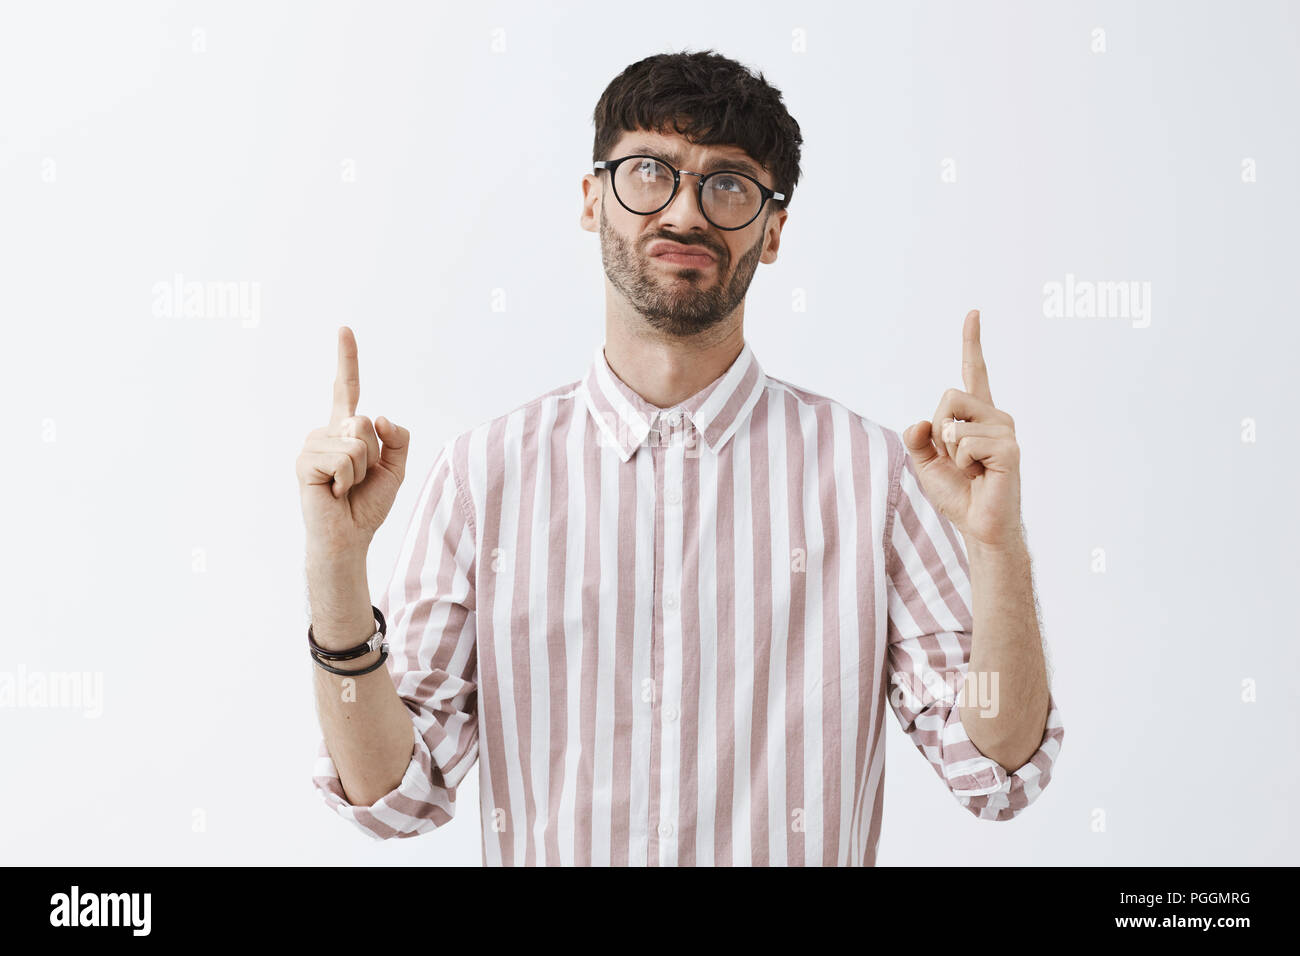 Waist-up shot of upset disappointed and snobbish good-looking guy in glasses and striped shirt pointing and looking up frowning and smirking from dislike being unimpressed and dissatisfied - Stock Image